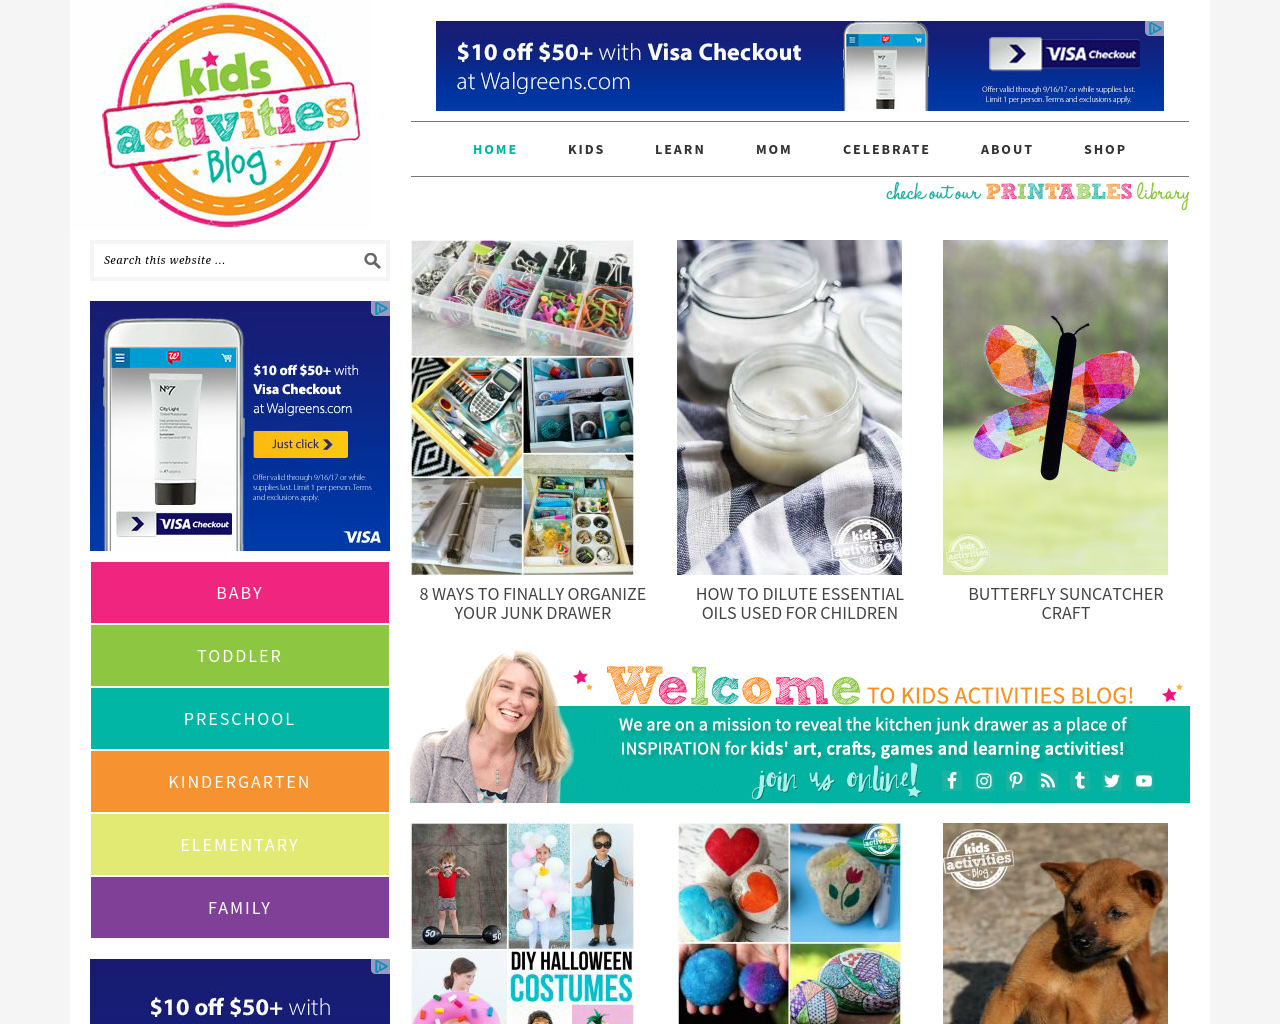 Kids-Activities-Blog-Advertising-Reviews-Pricing